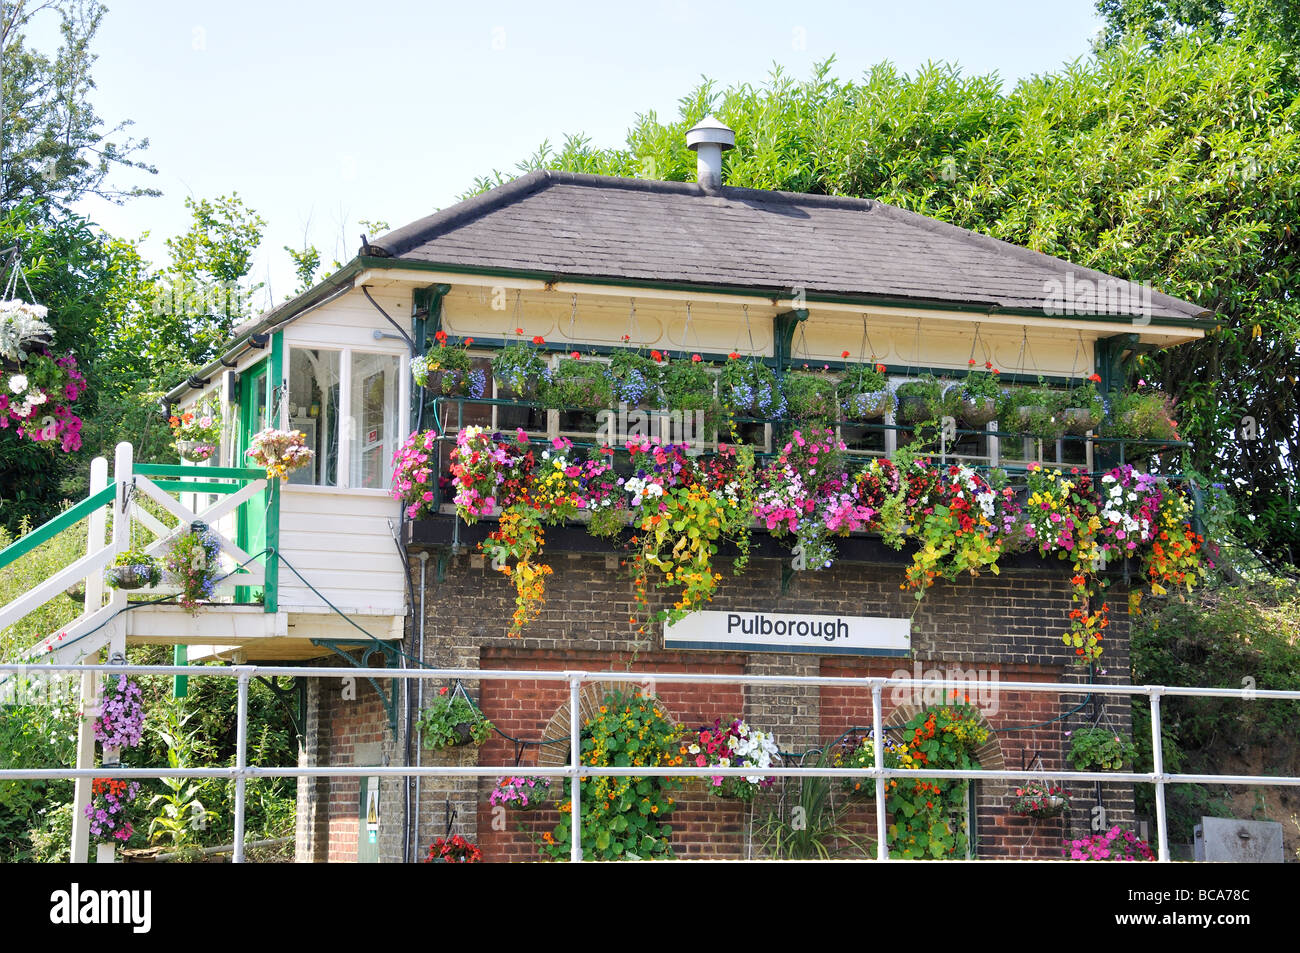 Flower-clad Pulborough Station Signal Box, Pulborough, West Sussex, England, United Kingdom - Stock Image